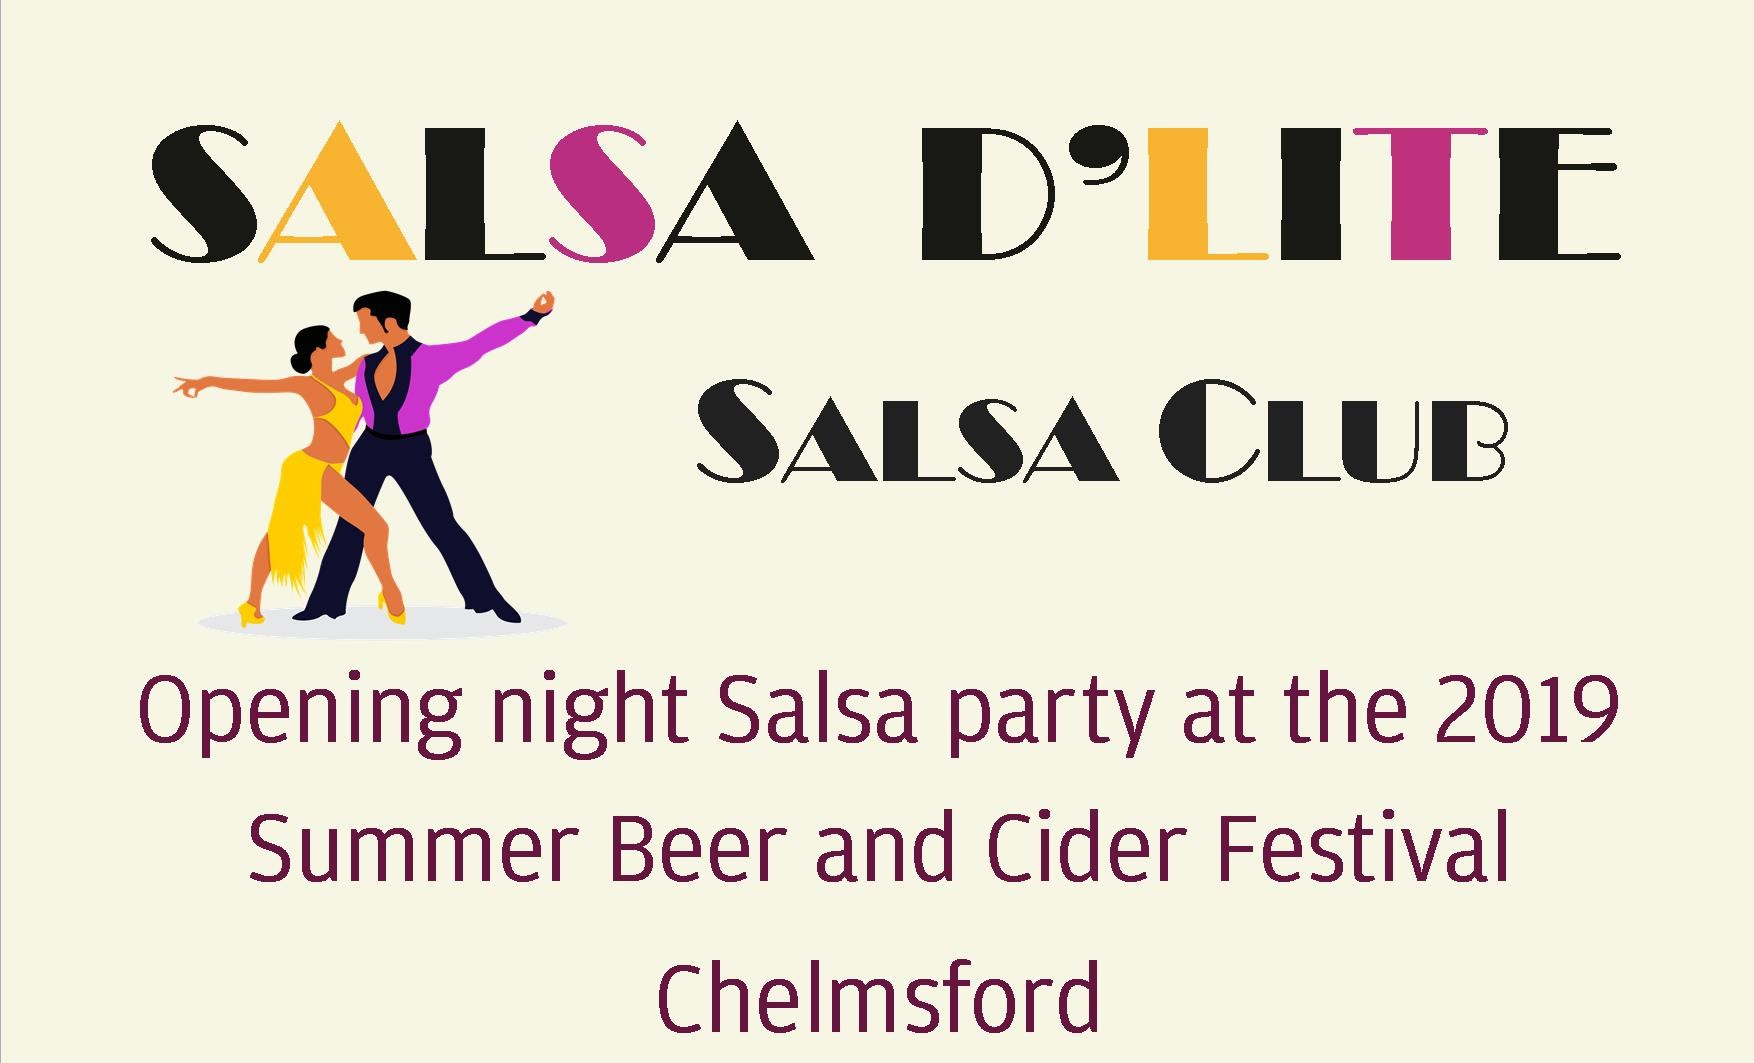 Salsa D'Lite are performing a salsa dance party on the opening night of the festival